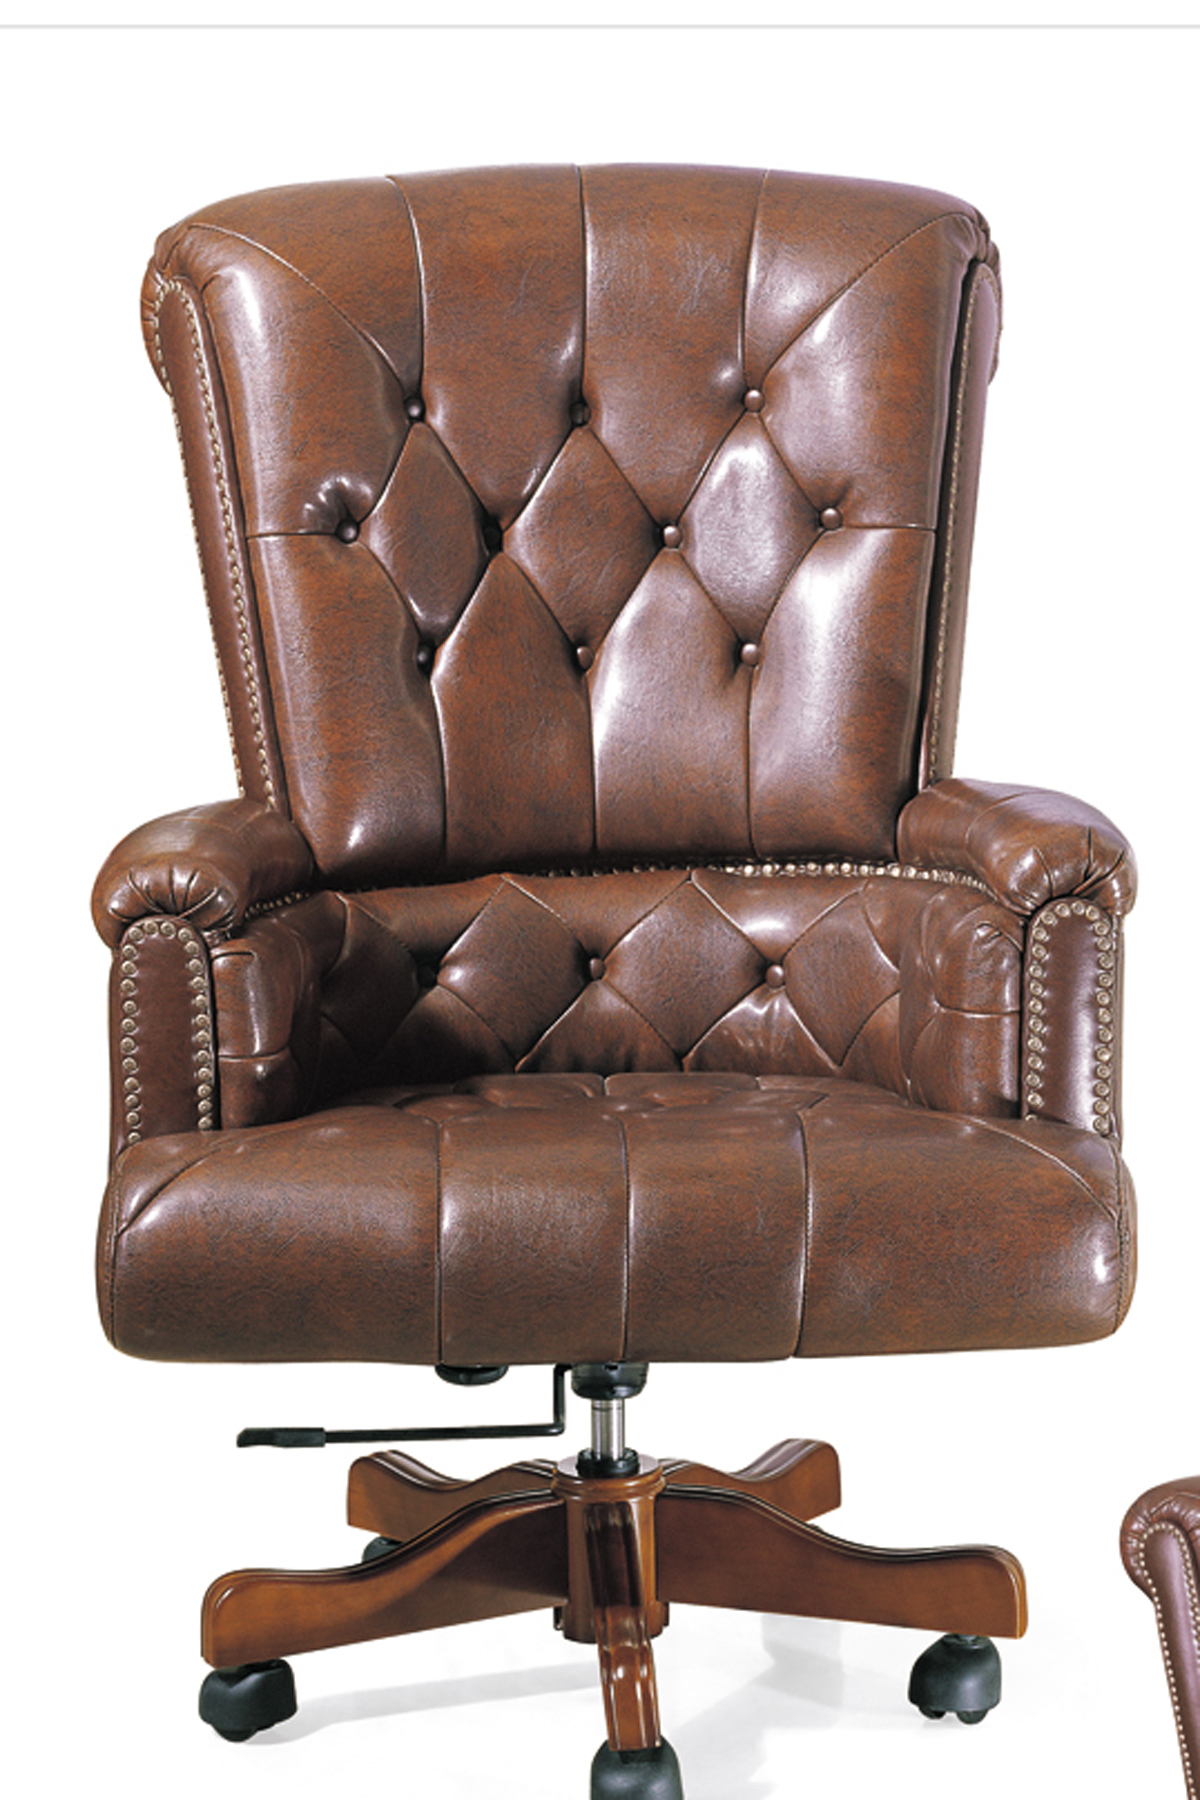 UFD OFFICE FURNITURE Office Chair